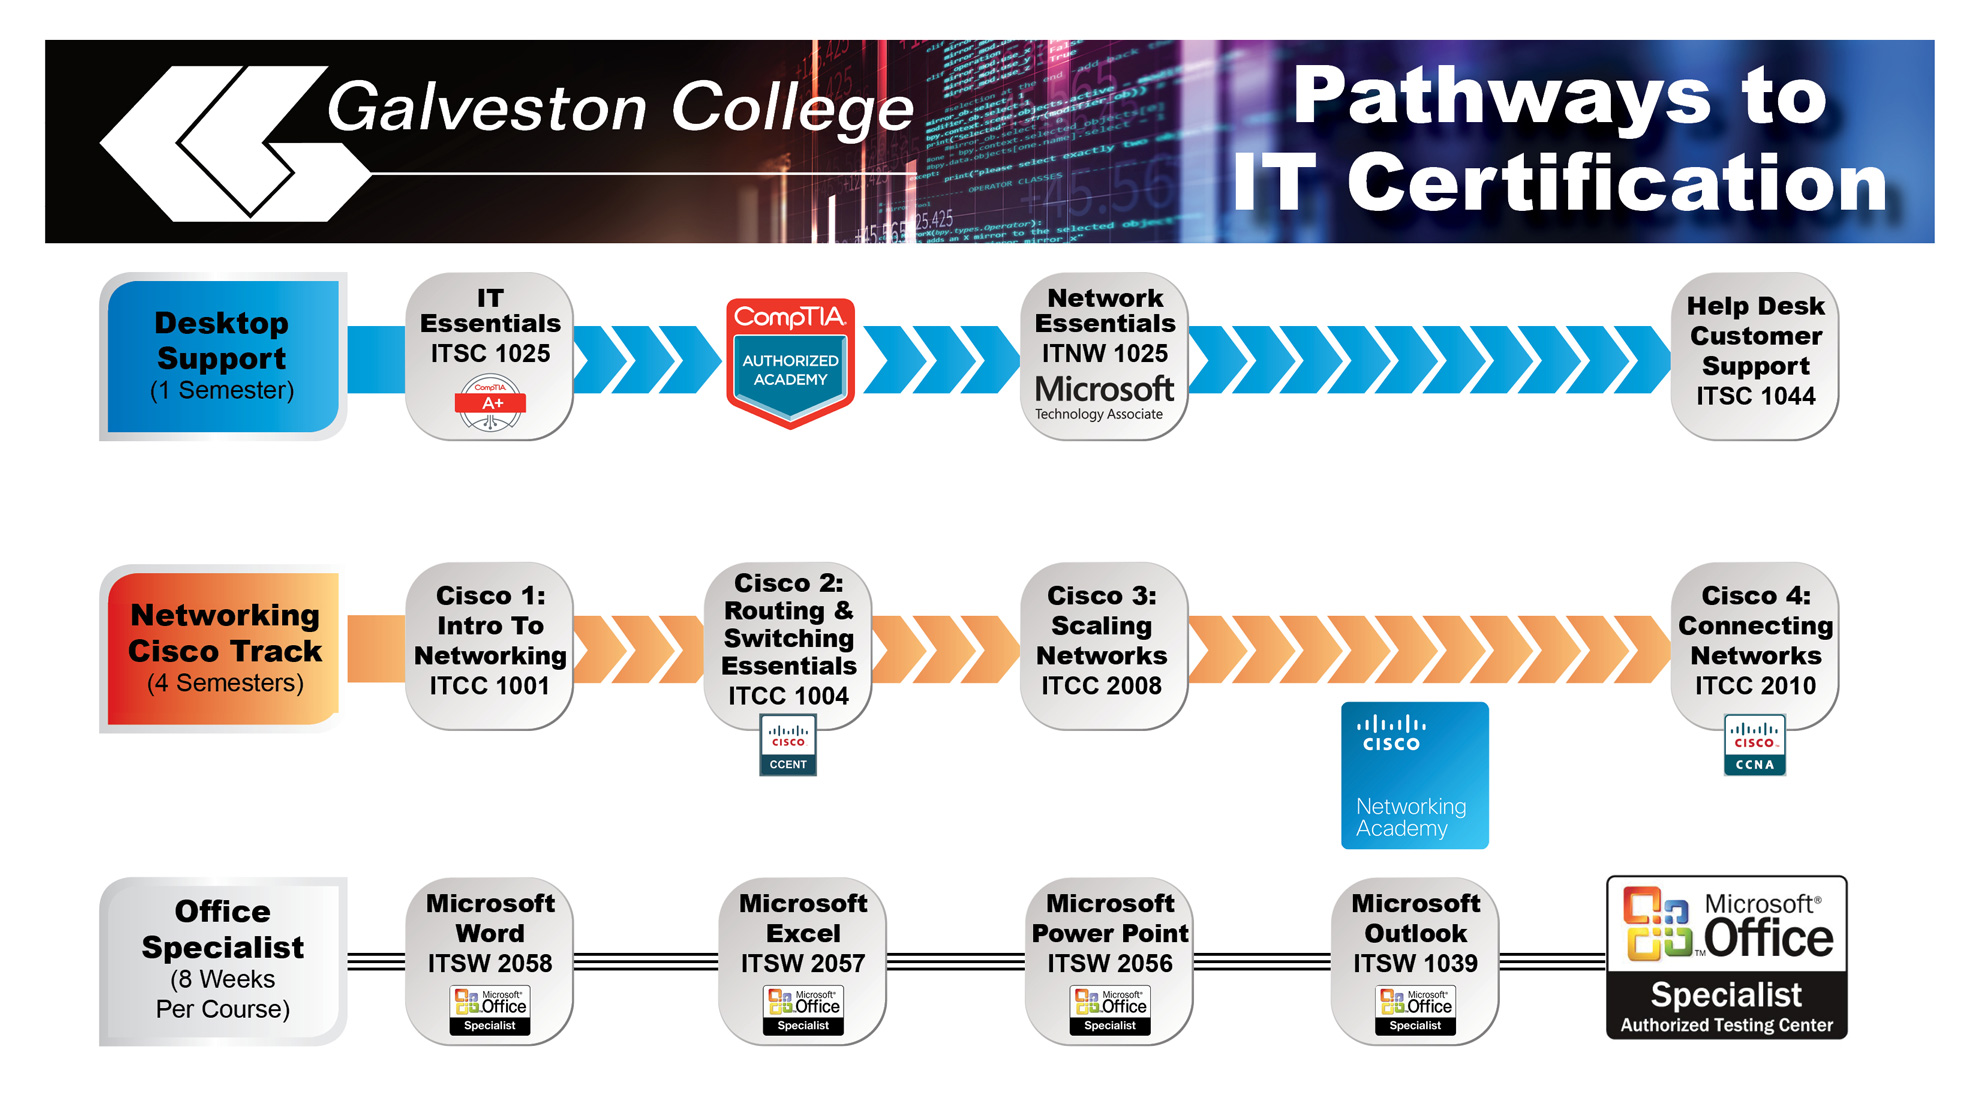 Cisco Networking Academy Galveston College